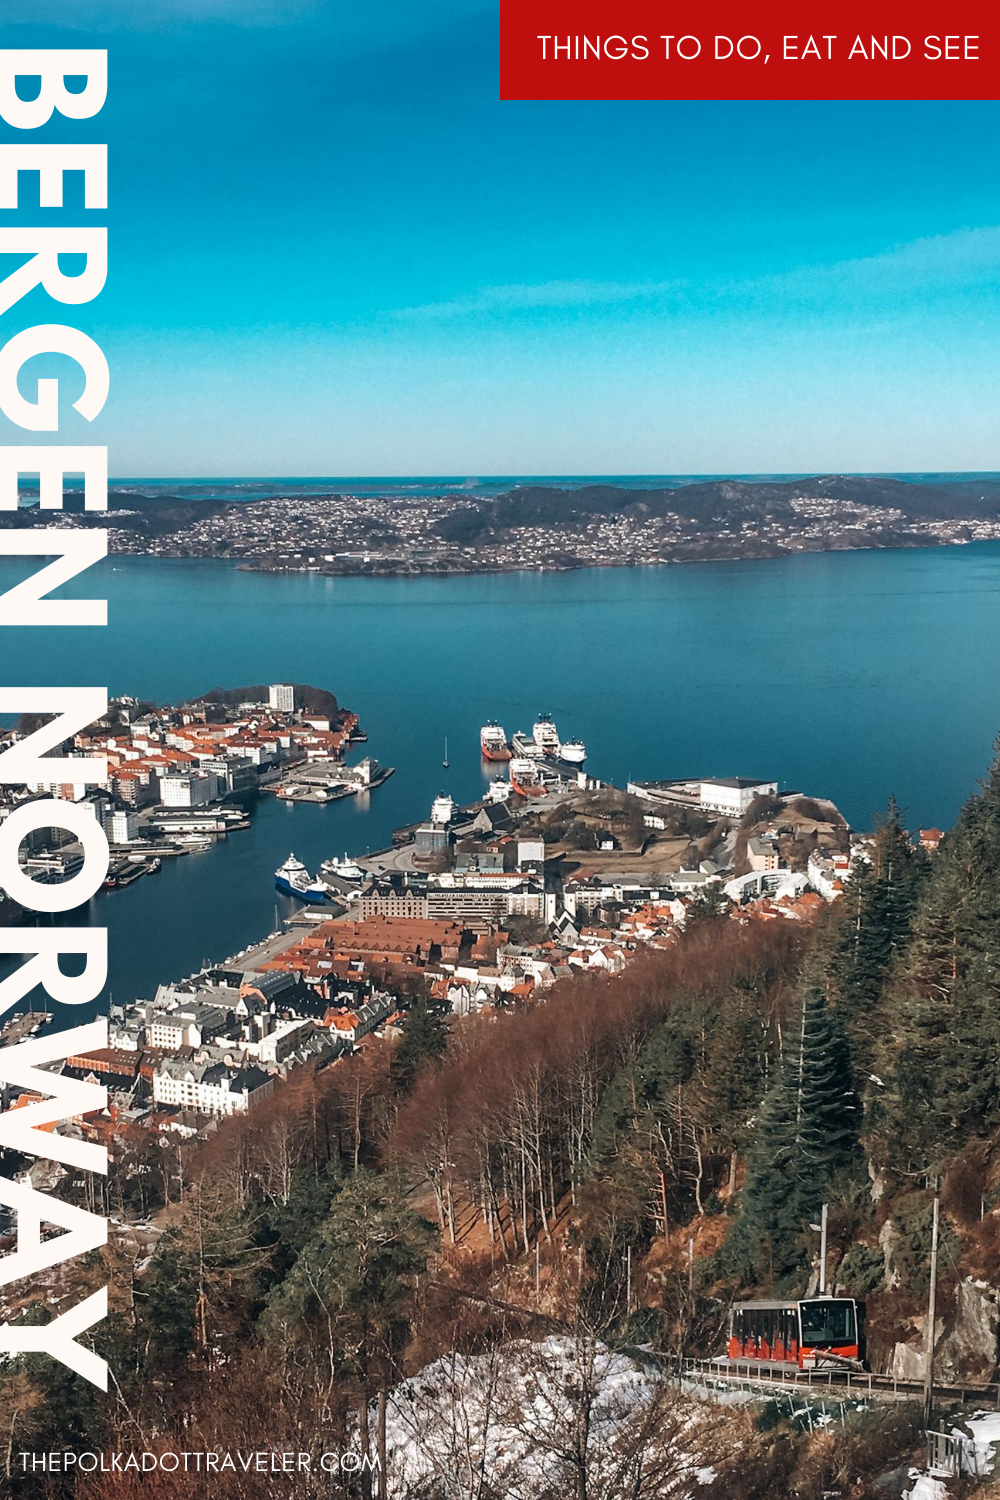 A budget friendly trip to Bergen, Norway. Find things to do, eat and see giving you the best bang for your buck. | Bergen, Norway inspiration for your next trip. #bergen #budgettraveler #norway